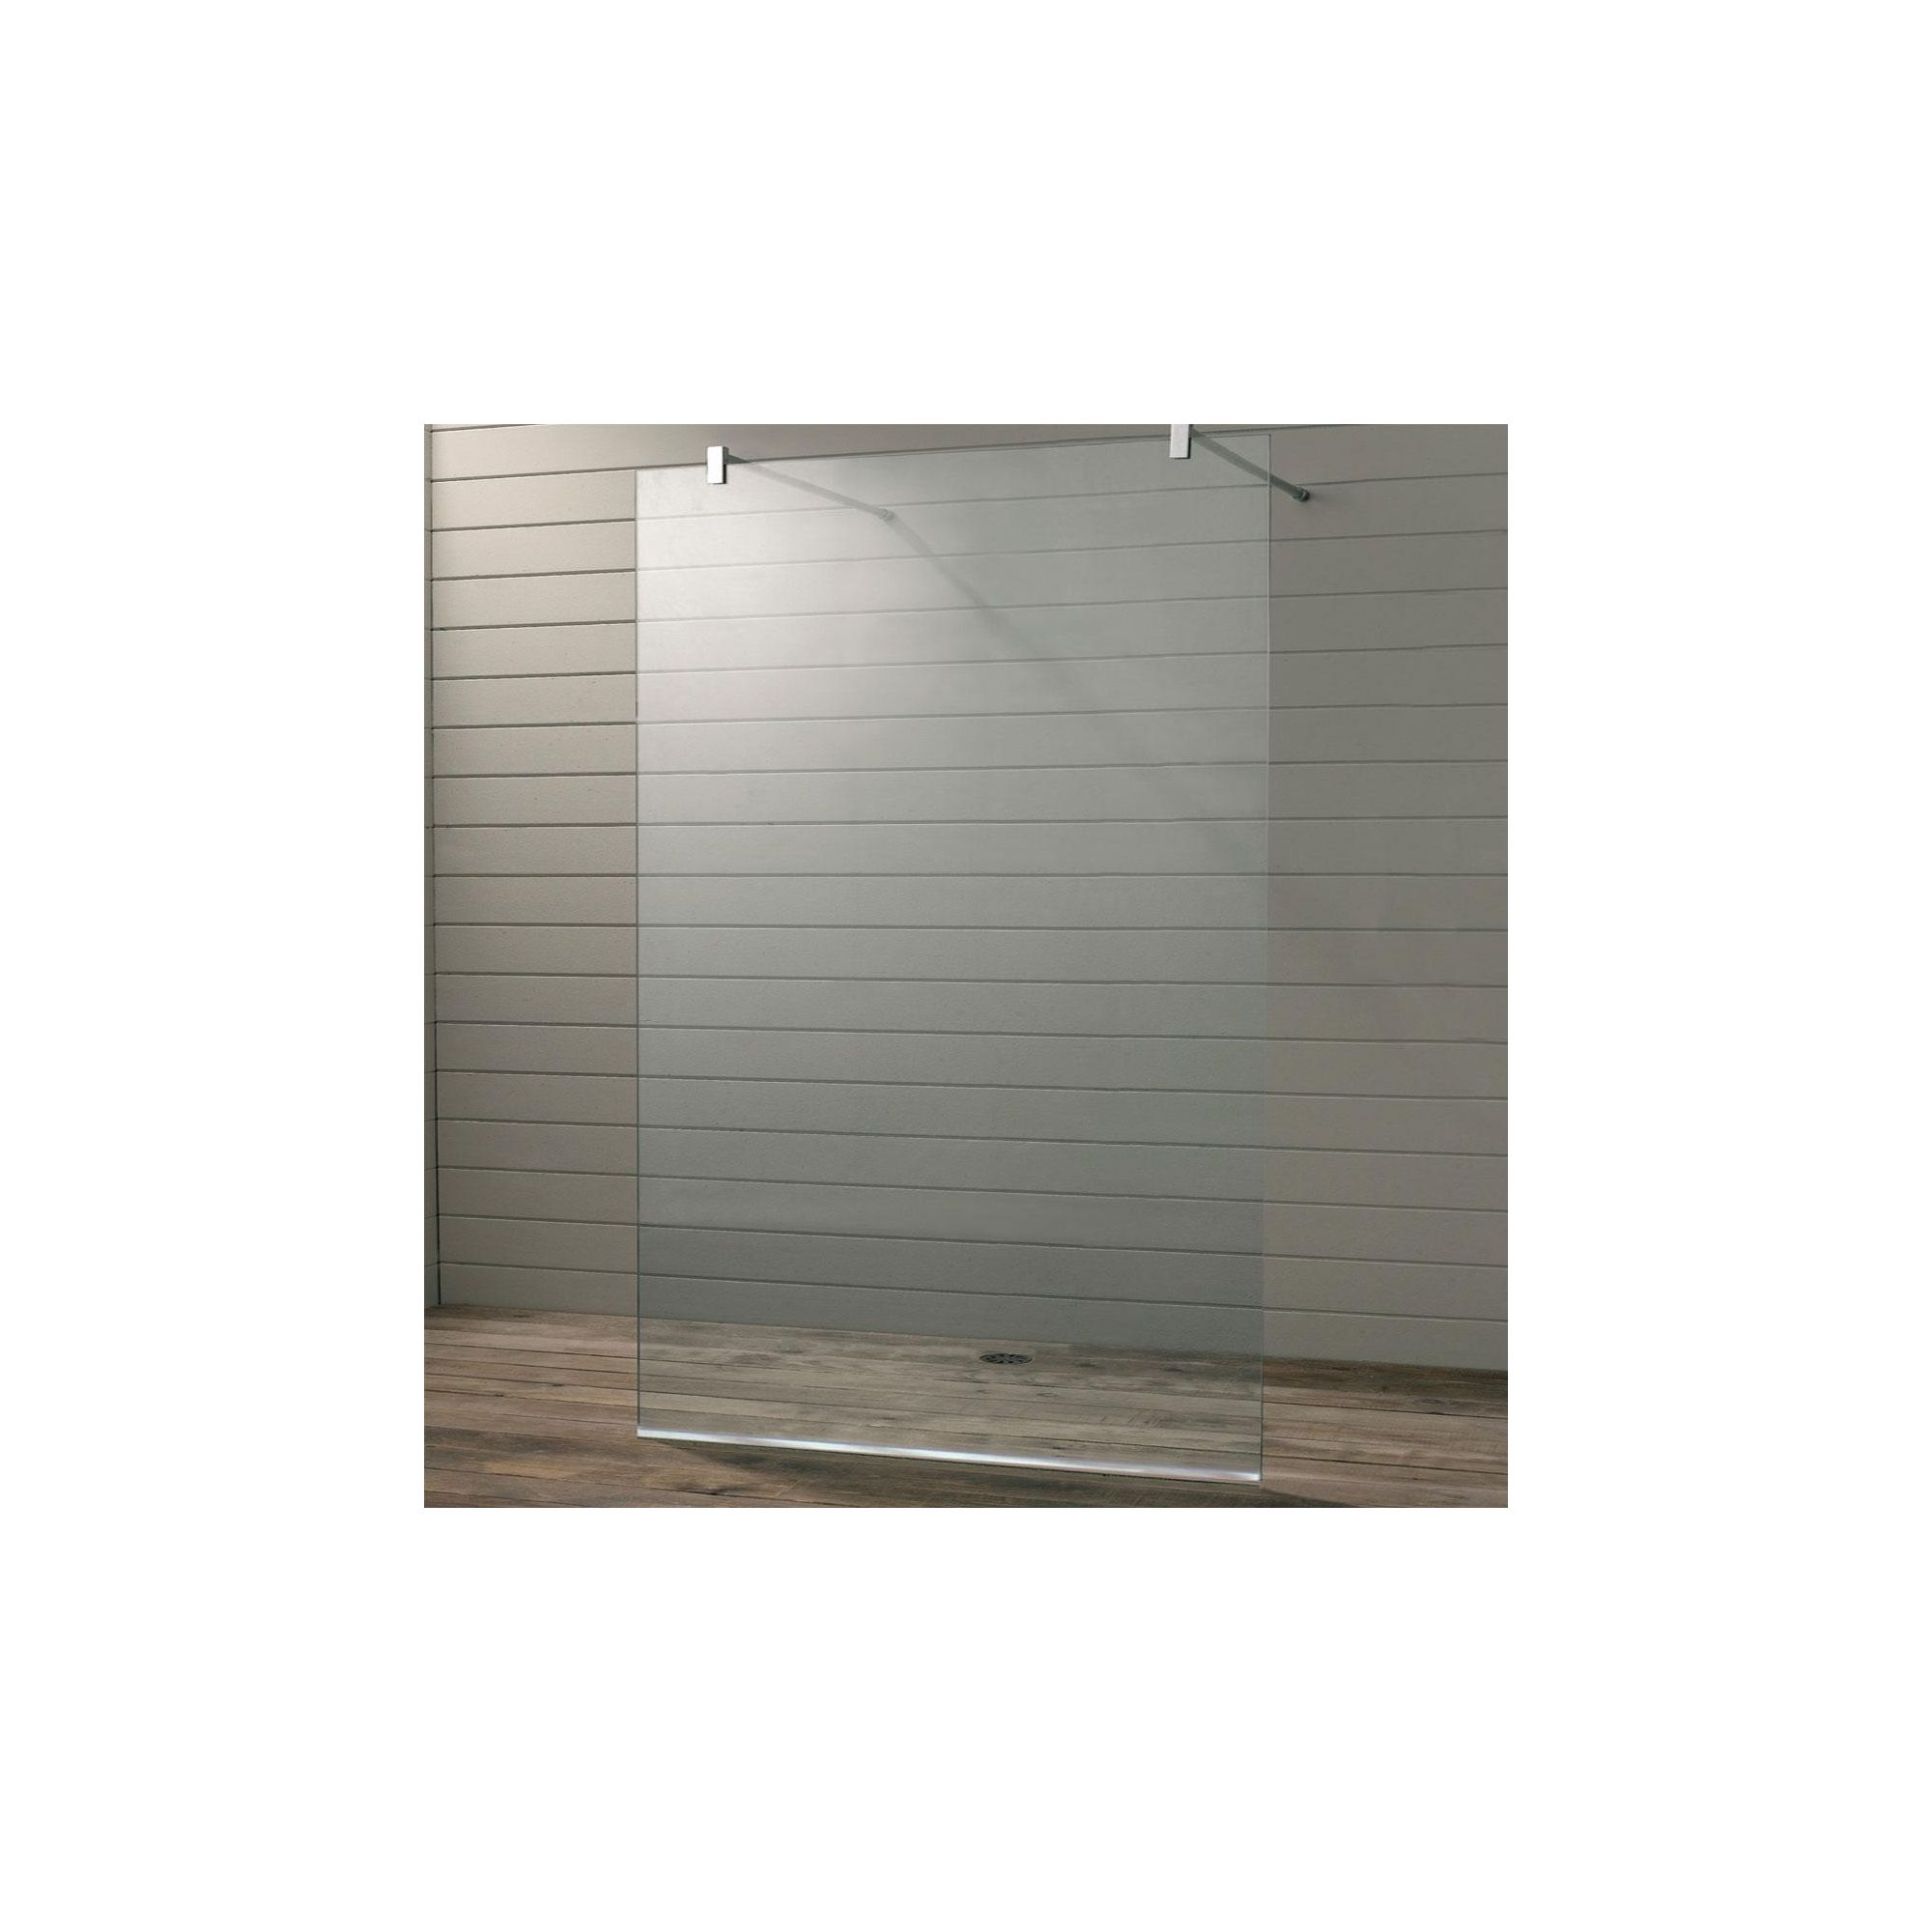 Duchy Premium Wet Room Glass Shower Panel, 1100mm x 900mm, 10mm Glass, Low Profile Tray at Tescos Direct